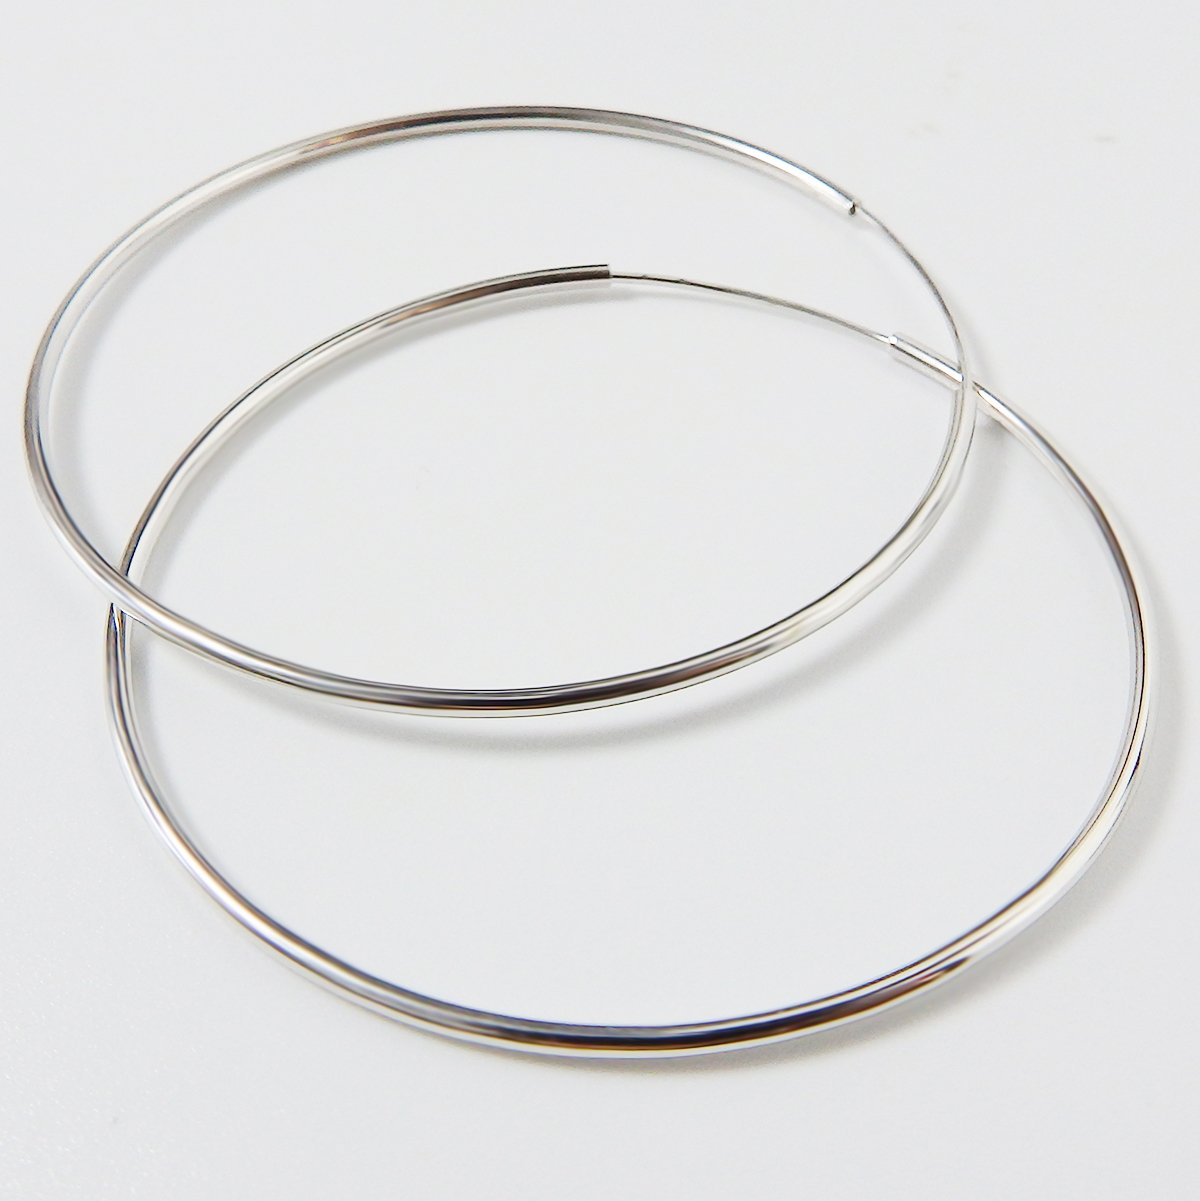 IDoy 925 Sterling Silver Hoop Earrings - Simple Polished Large Round Earrings for Women 50mm by IDoy (Image #3)